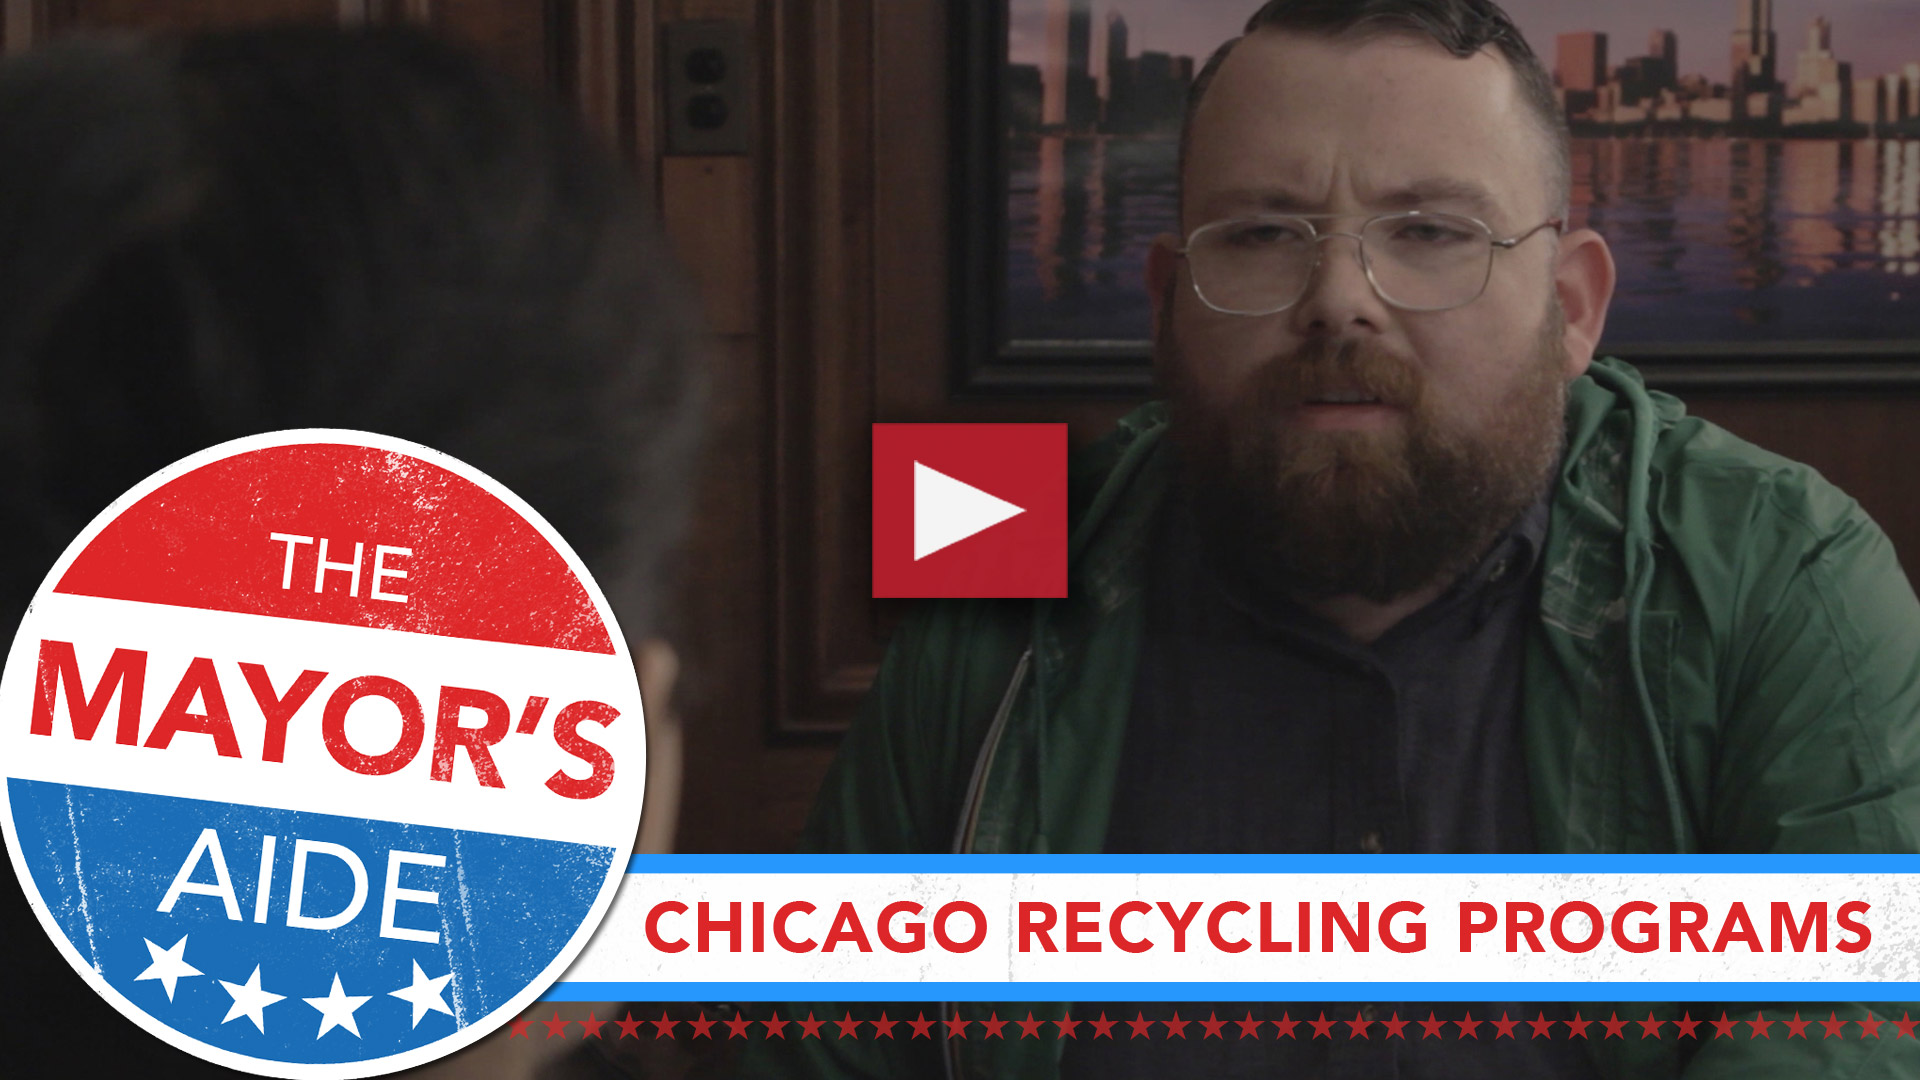 The Mayor's Aide – Chicago Recycling Program